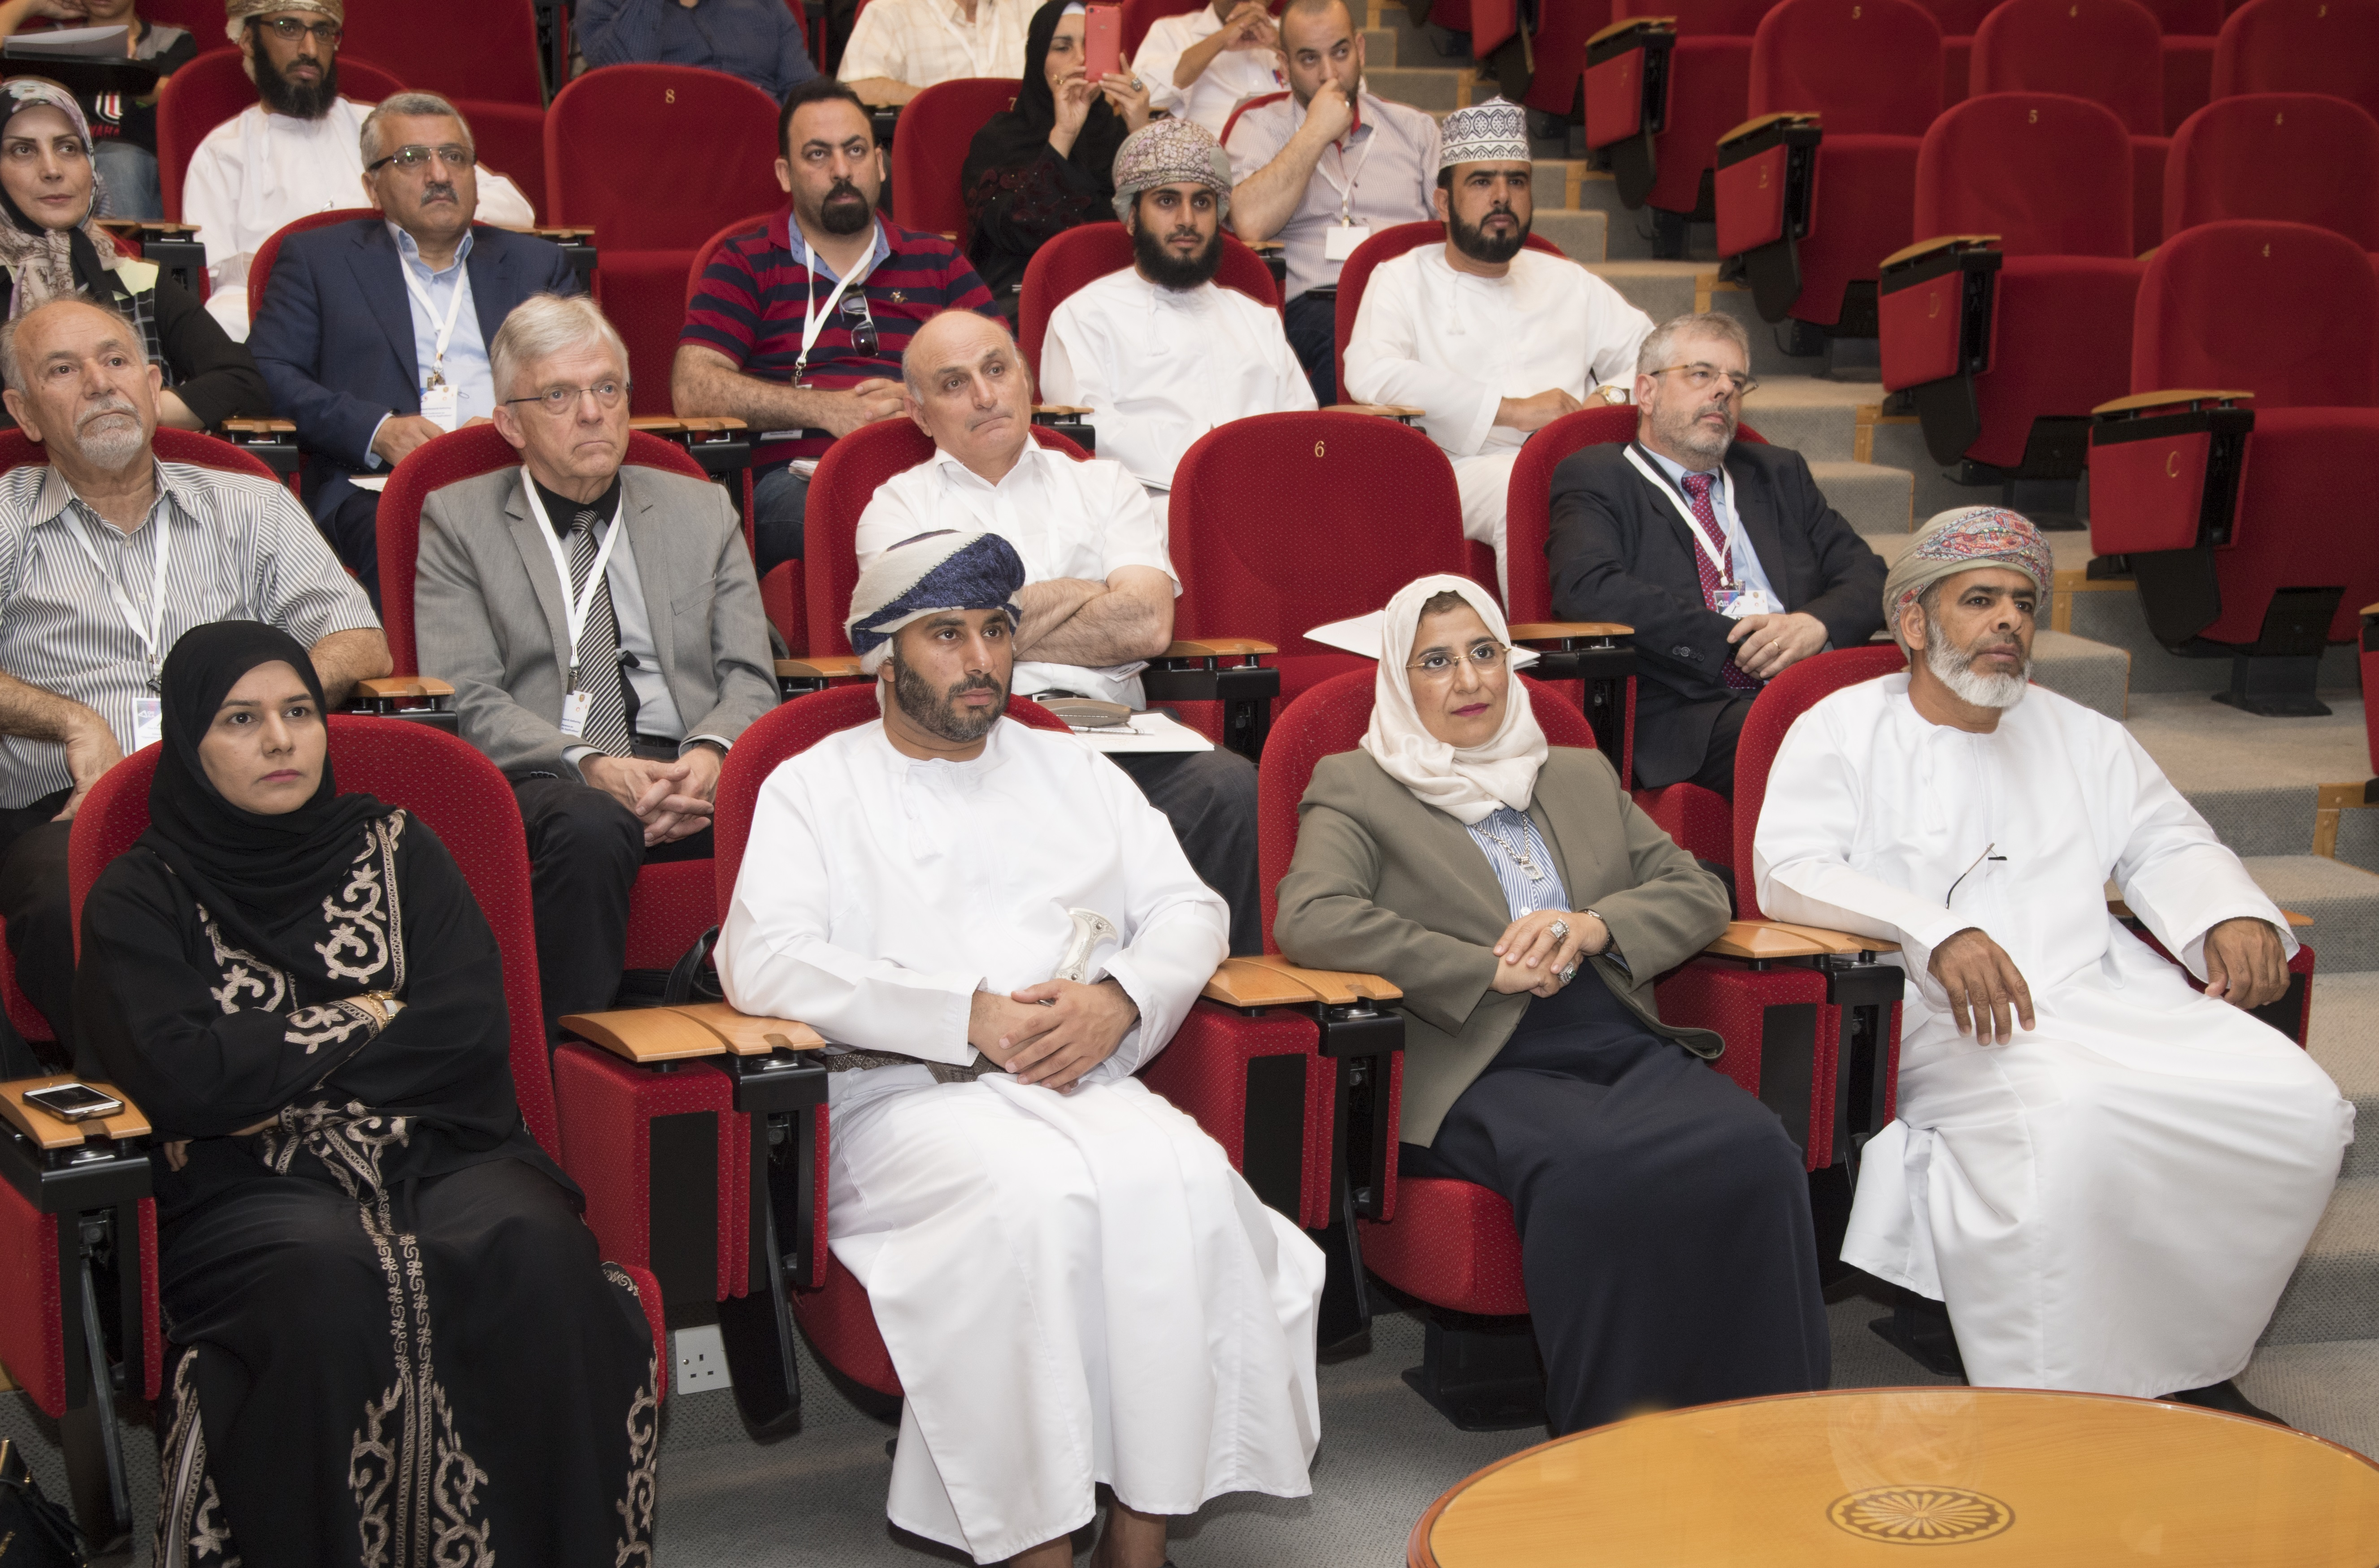 Conference on operations research begins at Sultan Qaboos University